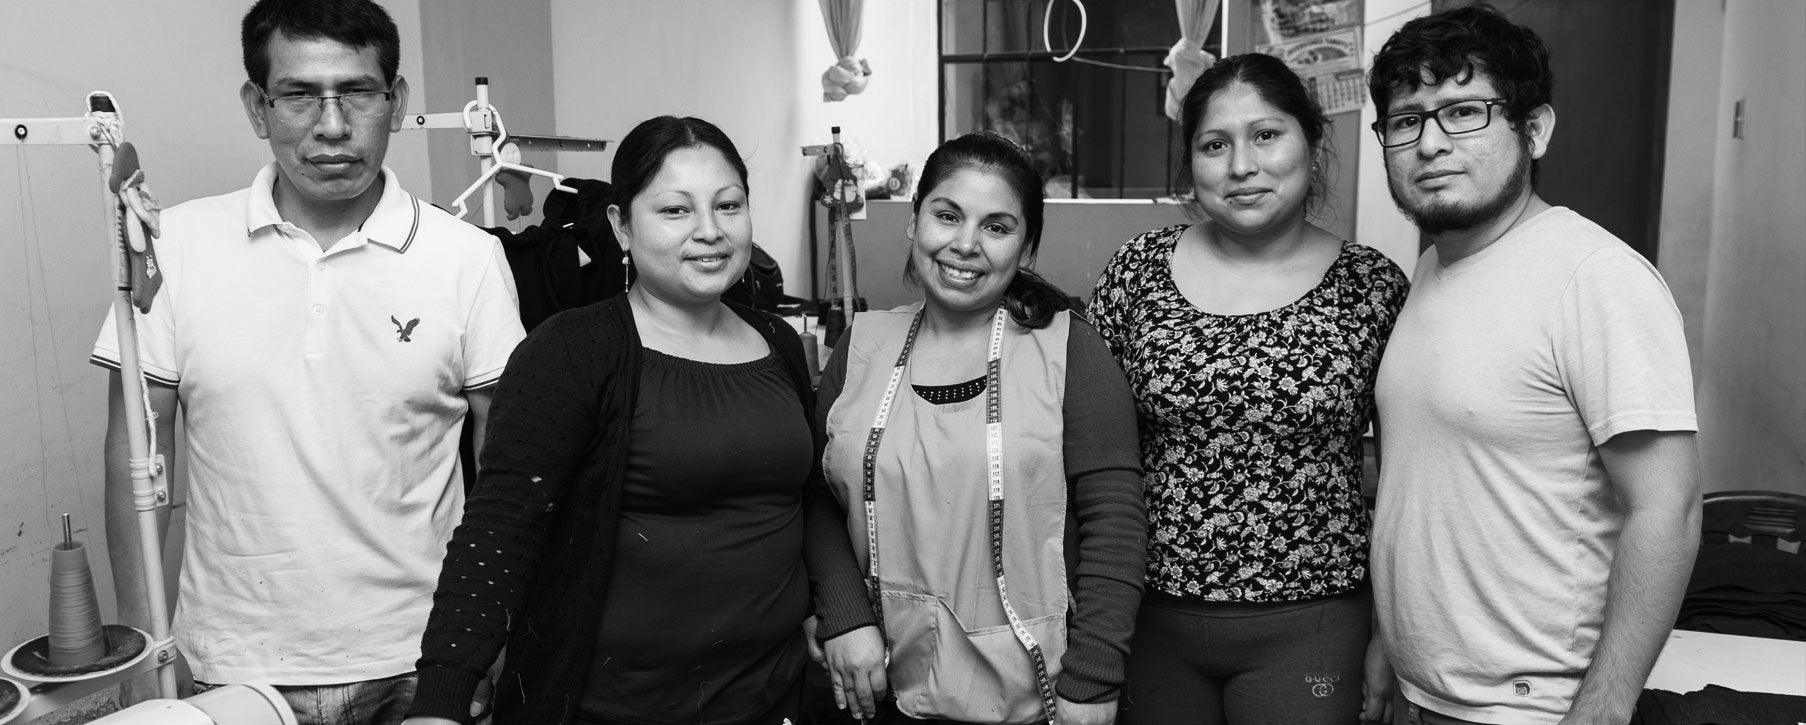 Fair trade workshop in Peru